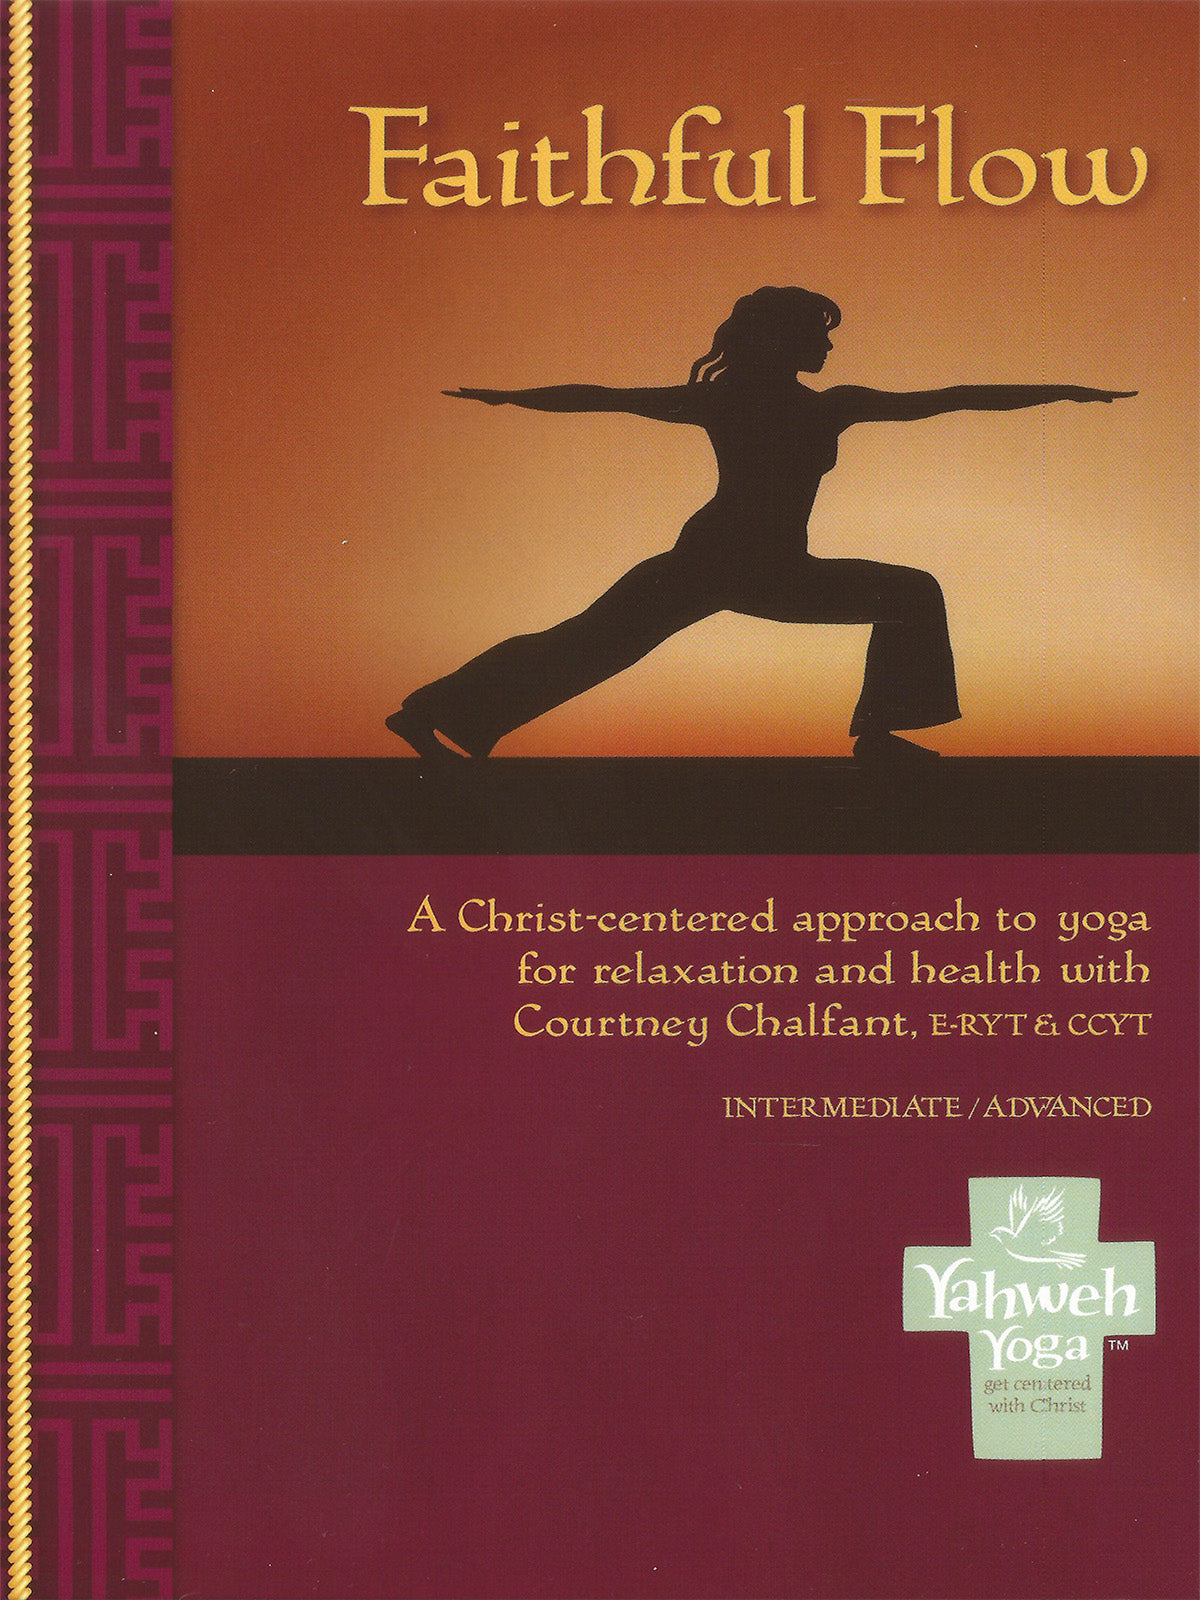 Classic one hour flow yoga DVD